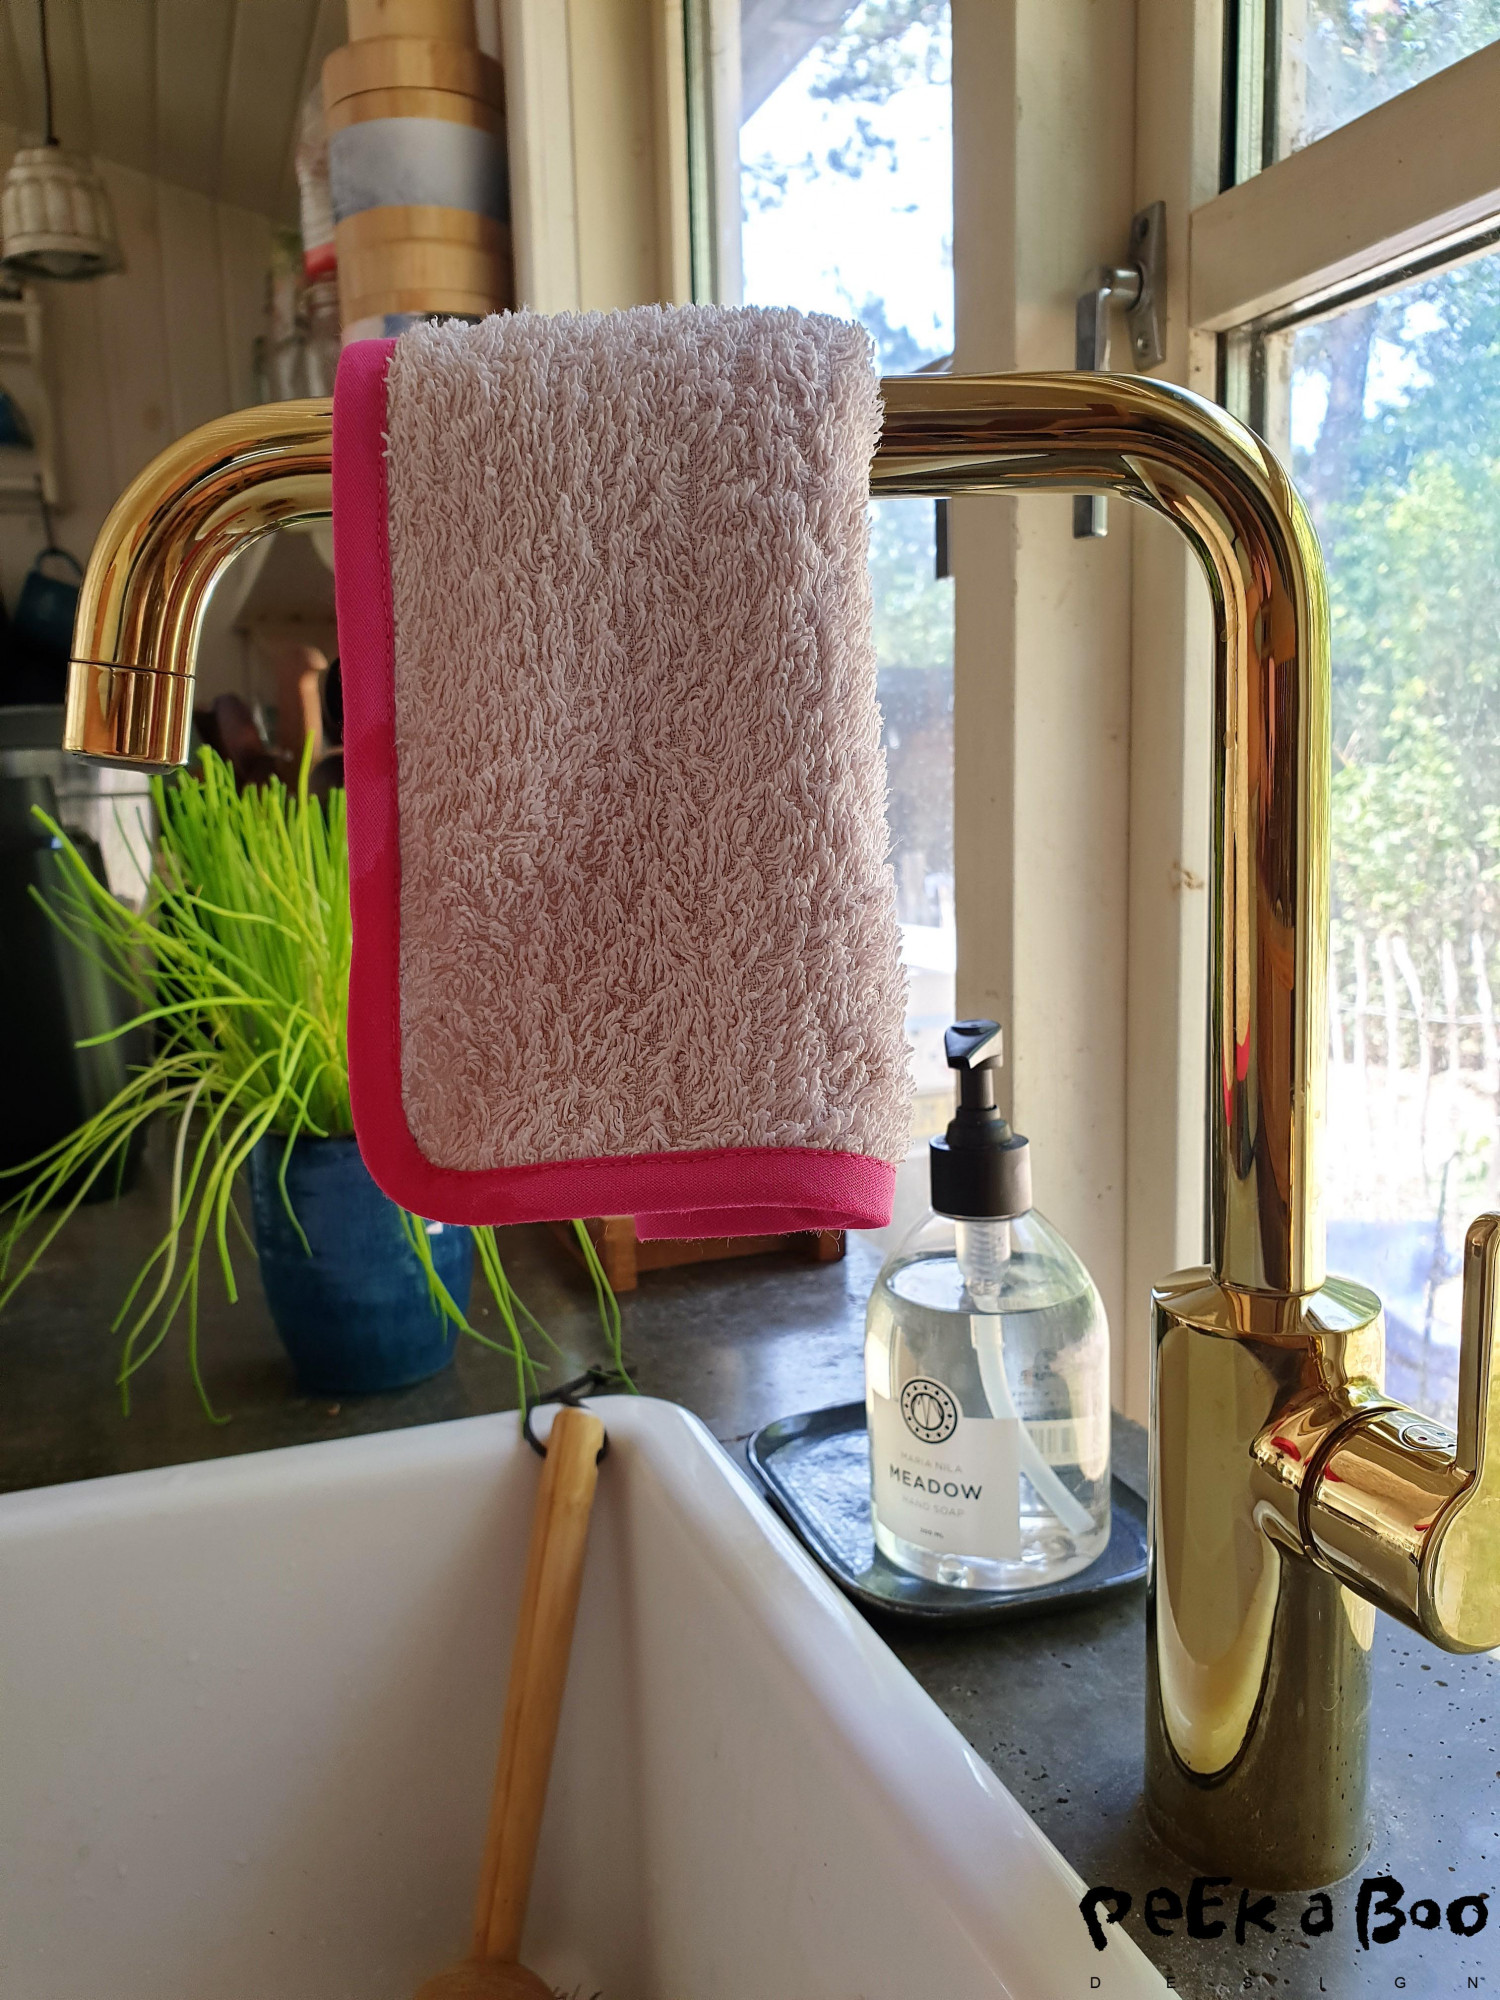 This dish cloth is made of an old towel. It is hanging on my new water tap from Damixa, read more about that here. The handwash is from swedish Maria Nila that makes vegan, cruelty free and climate compensated products.